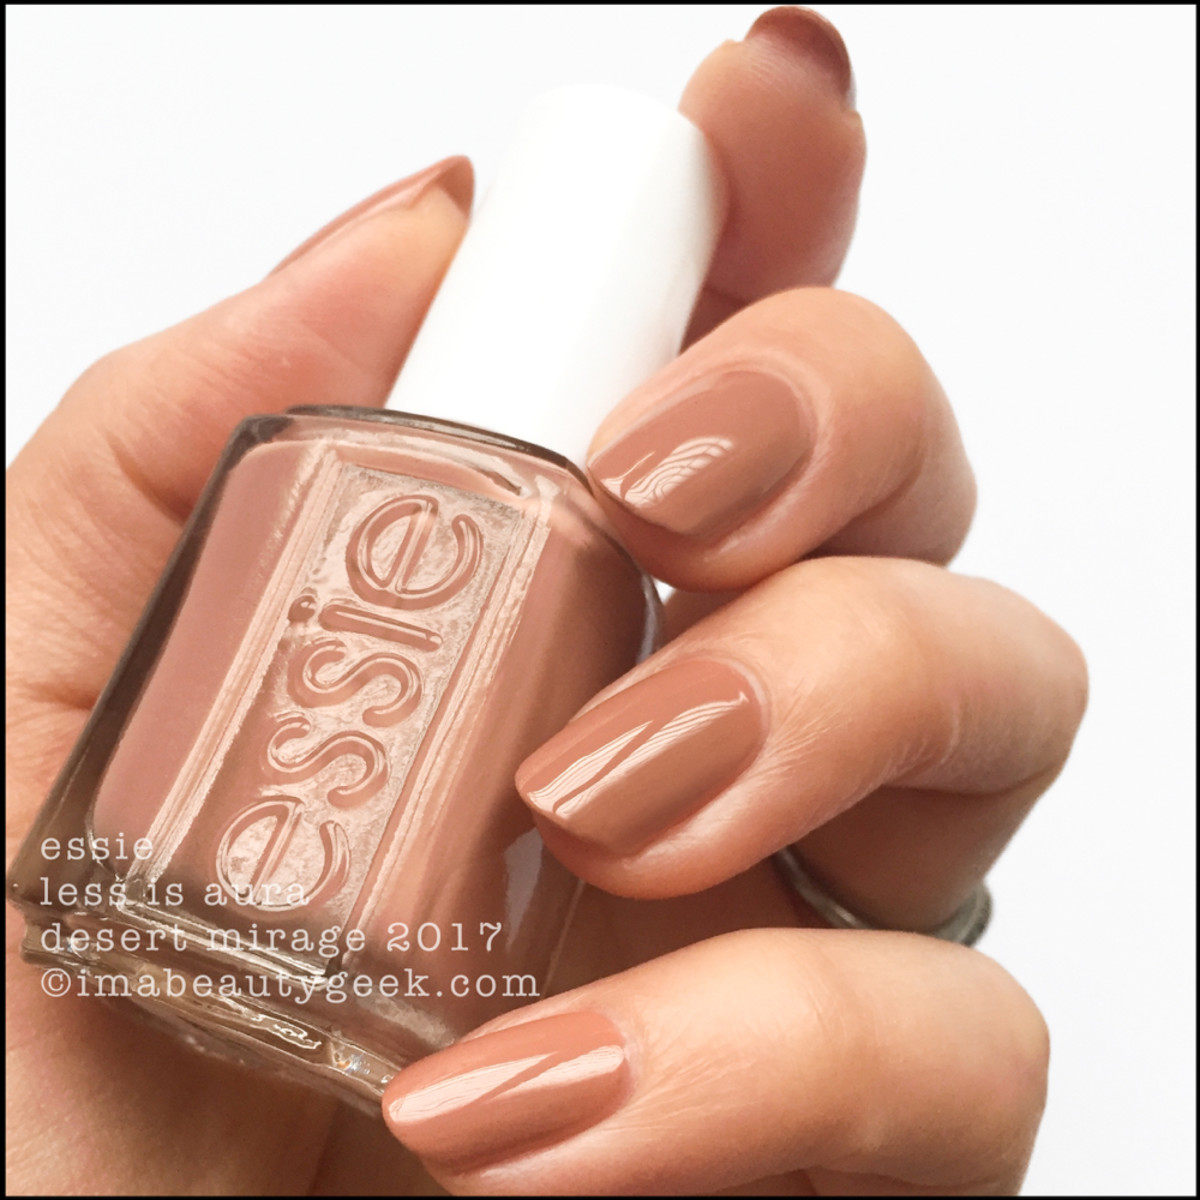 Essie Less Is Aura _ Essie Desert Mirage Collection Swatches 2018